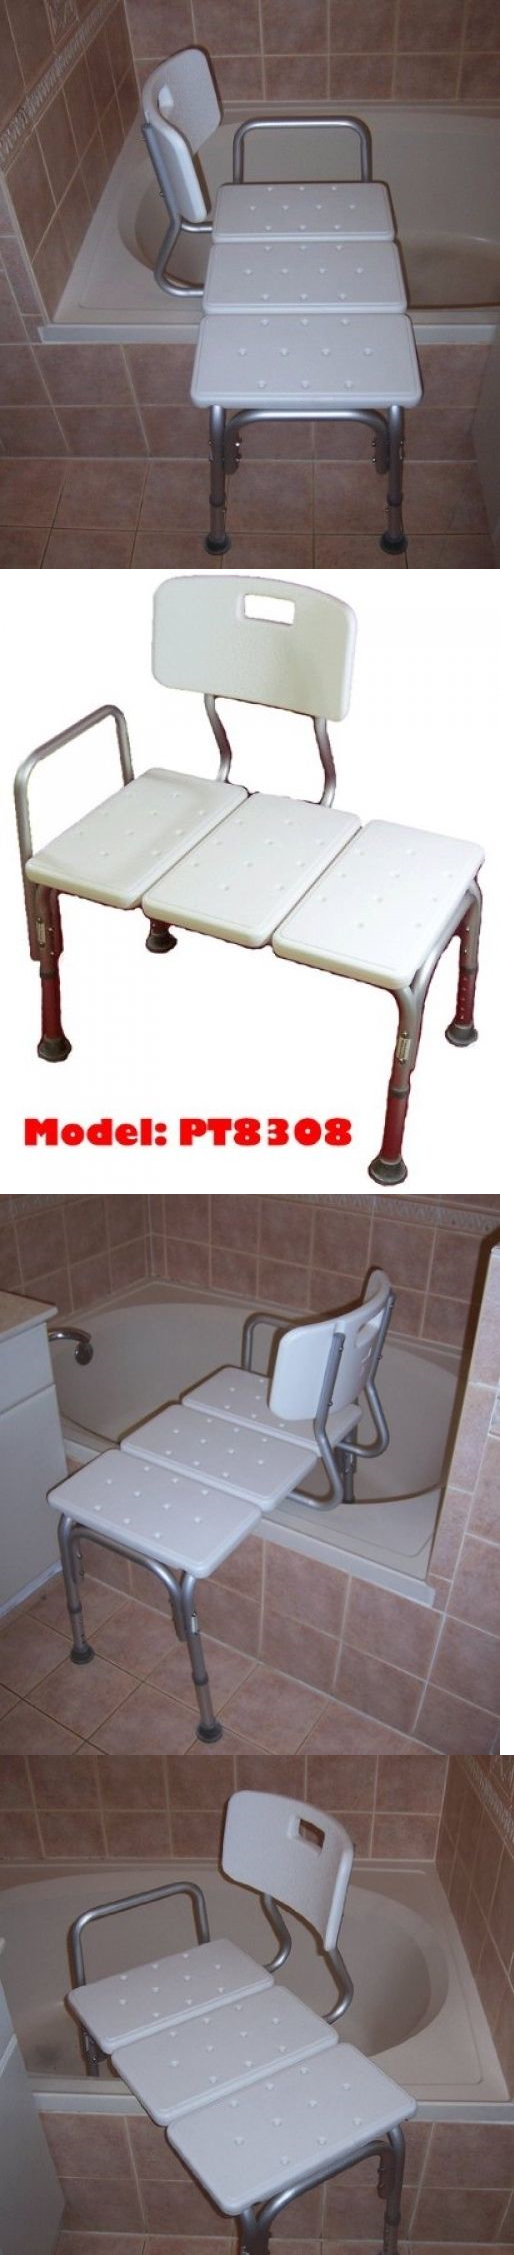 Shower and Bath Seats  Shower Chairs For Elderly Medical Disabled  Handicapped Bath Bathtub Seat BenchShower and Bath Seats  Shower Chairs For Elderly Medical Disabled  . Disabled Bathtub Chairs. Home Design Ideas